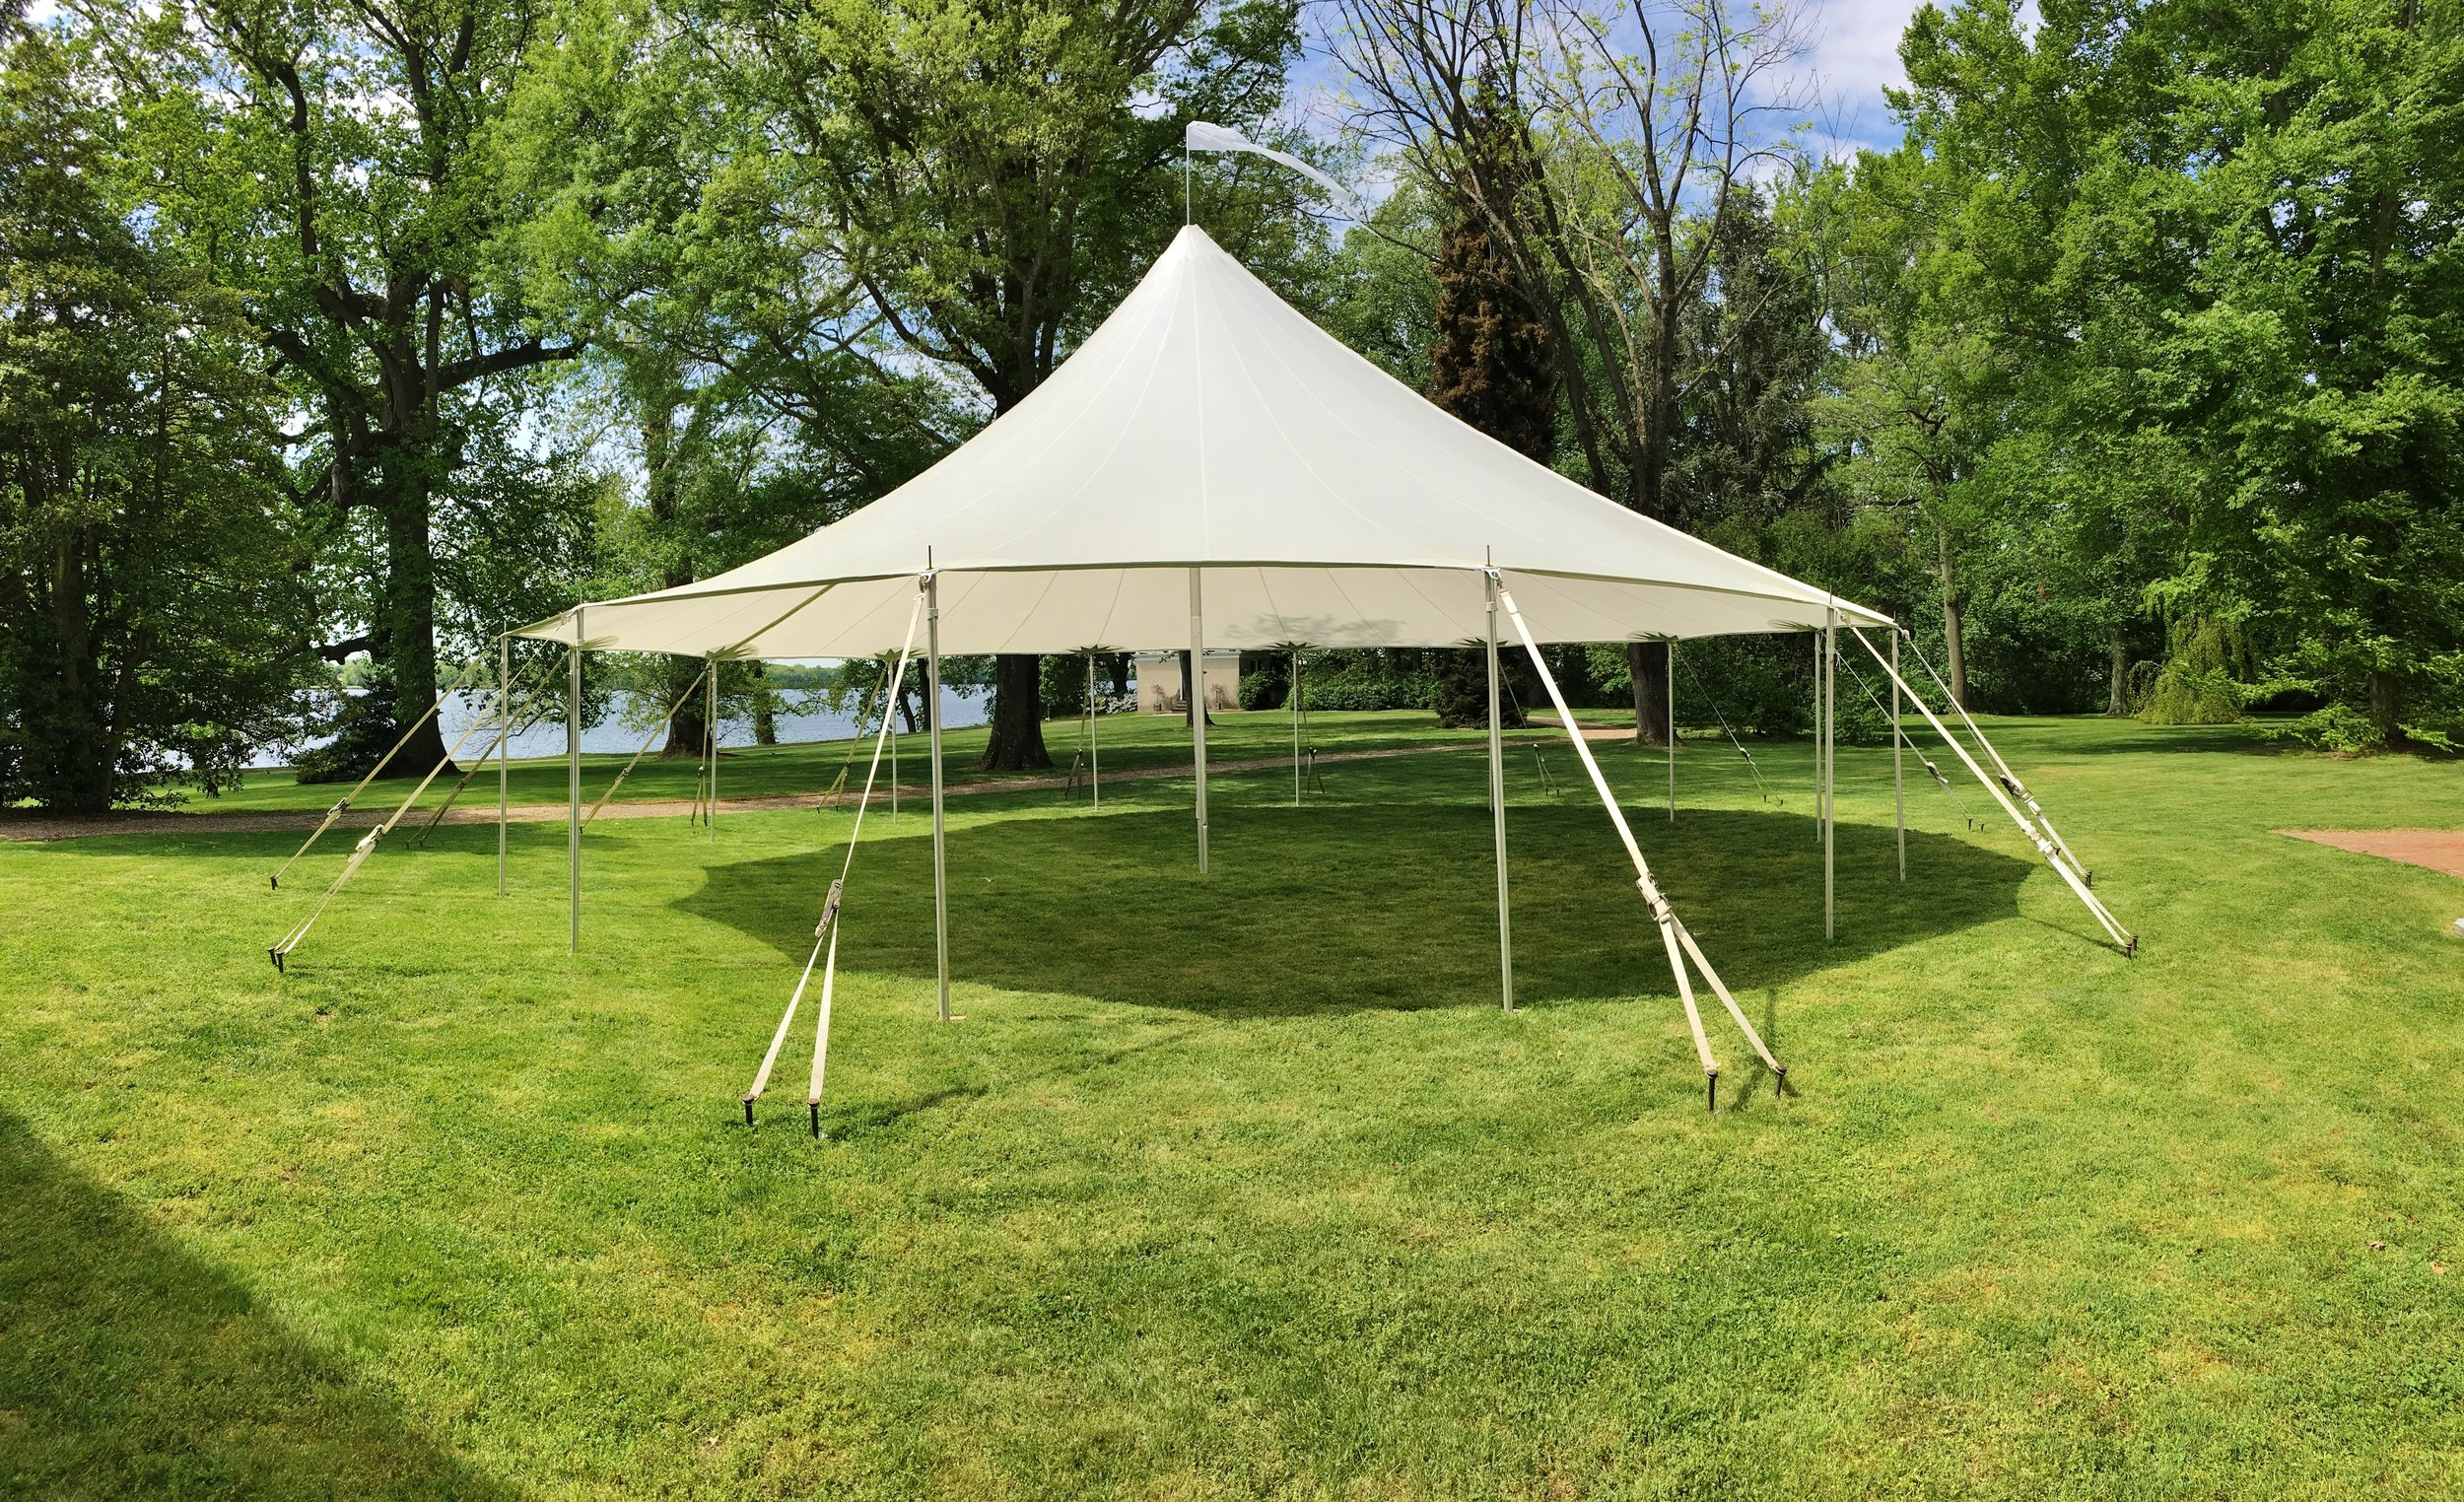 Is it cheaper to buy a tent or rent one? & Industrial and Storage Tents u2014 Tent Rentals Lancaster PA - Tents ...